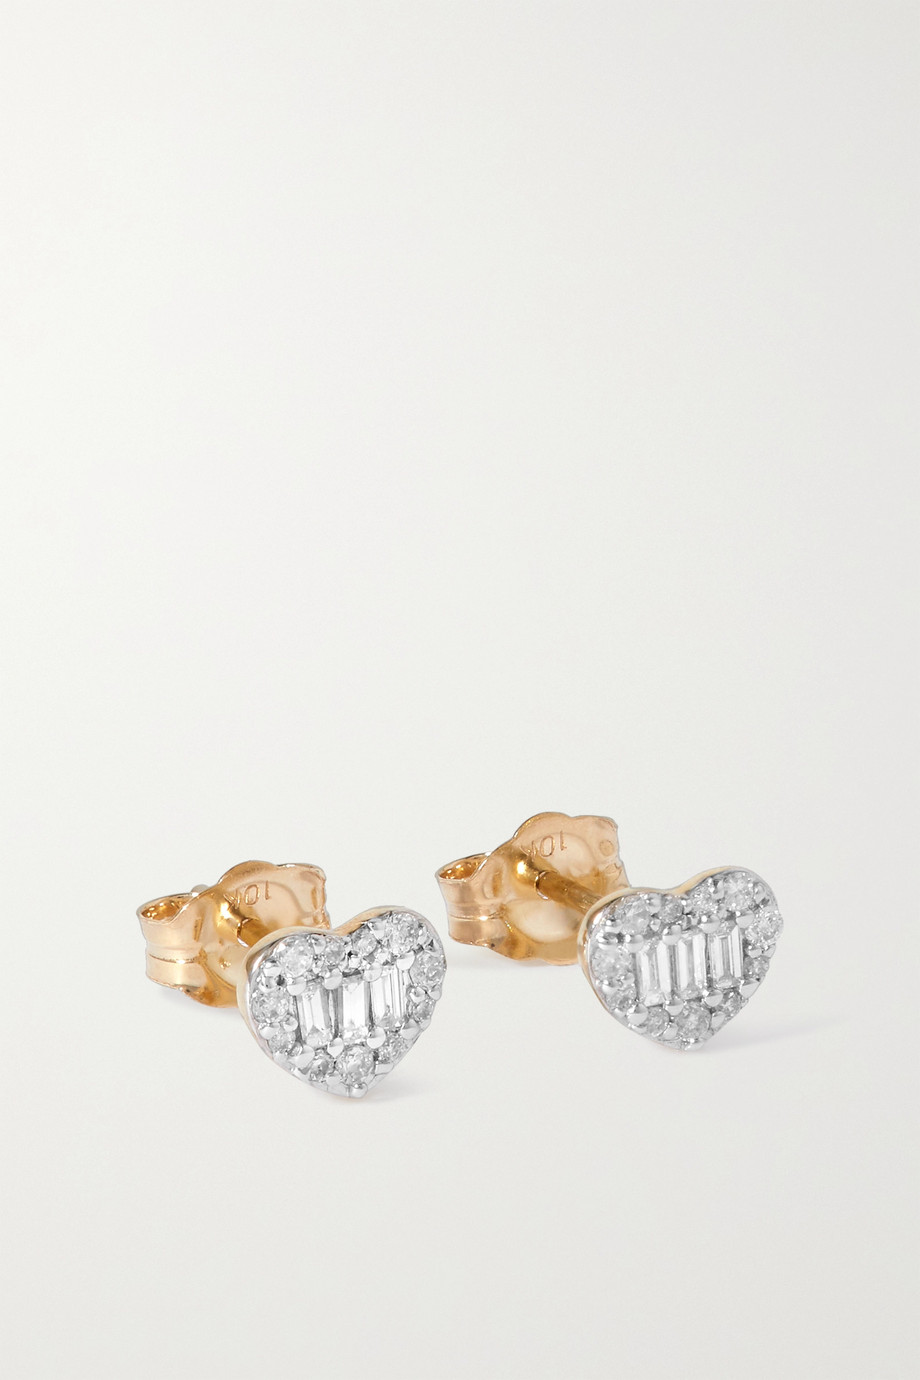 STONE AND STRAND Heart of the Matter gold diamond earrings